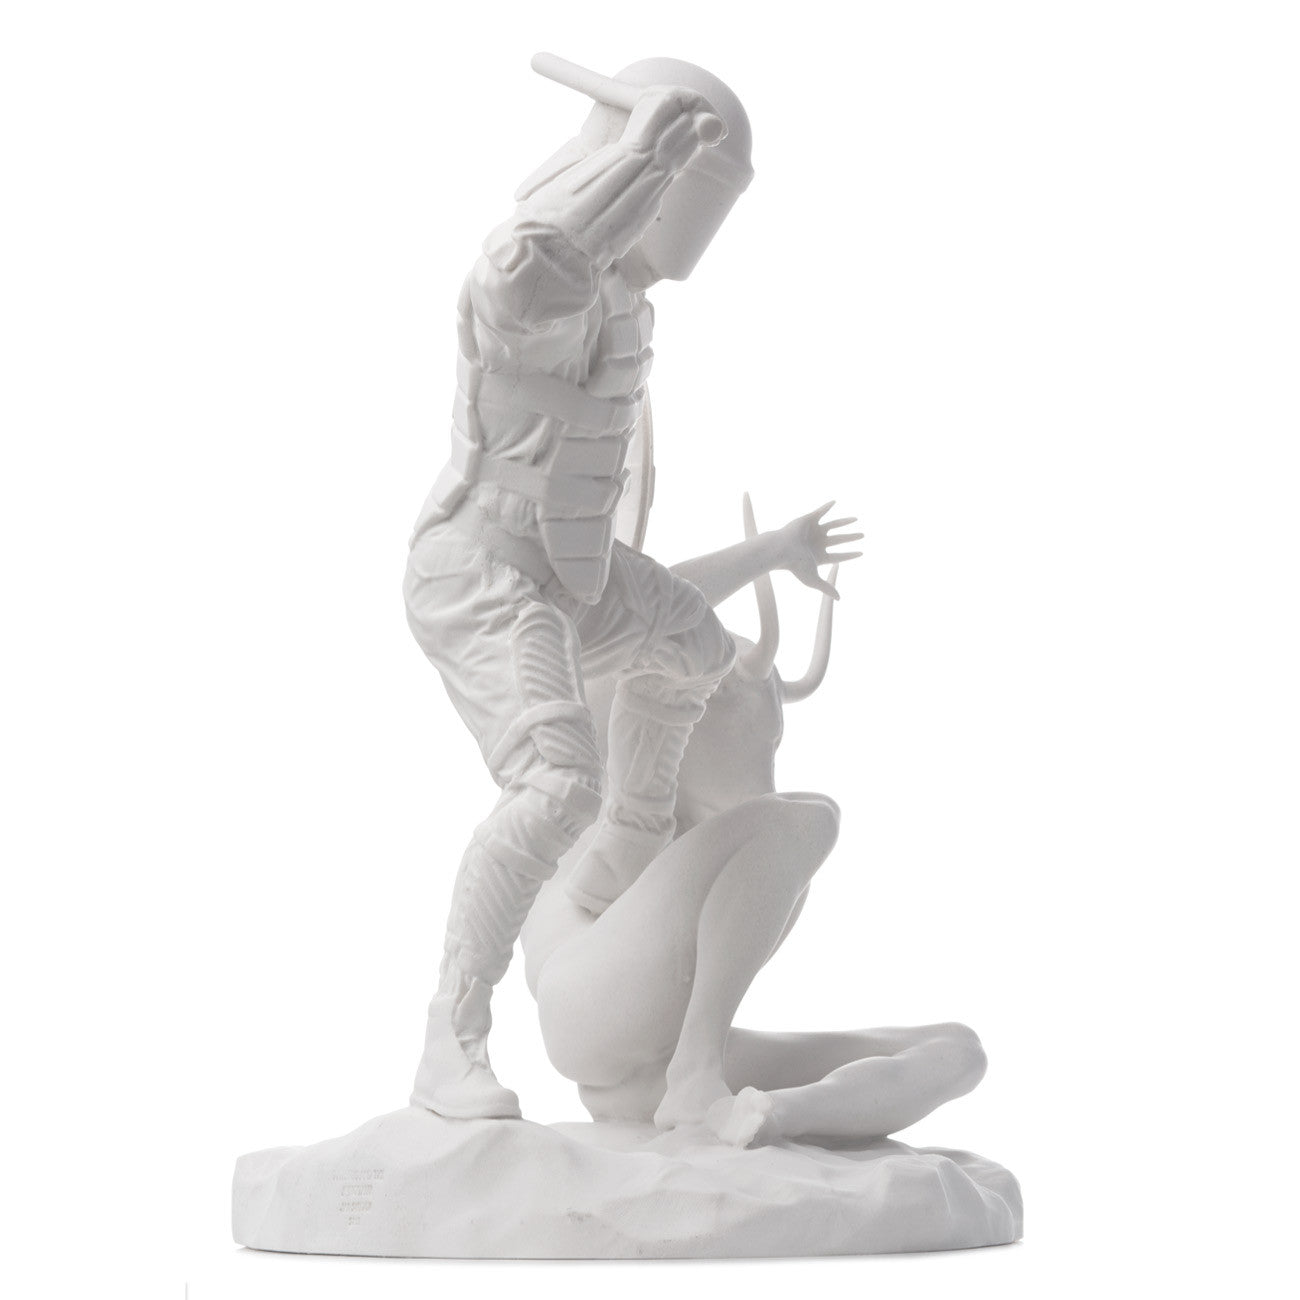 'Theseus & the Minotaur' Limited Edition Marble Sculpture